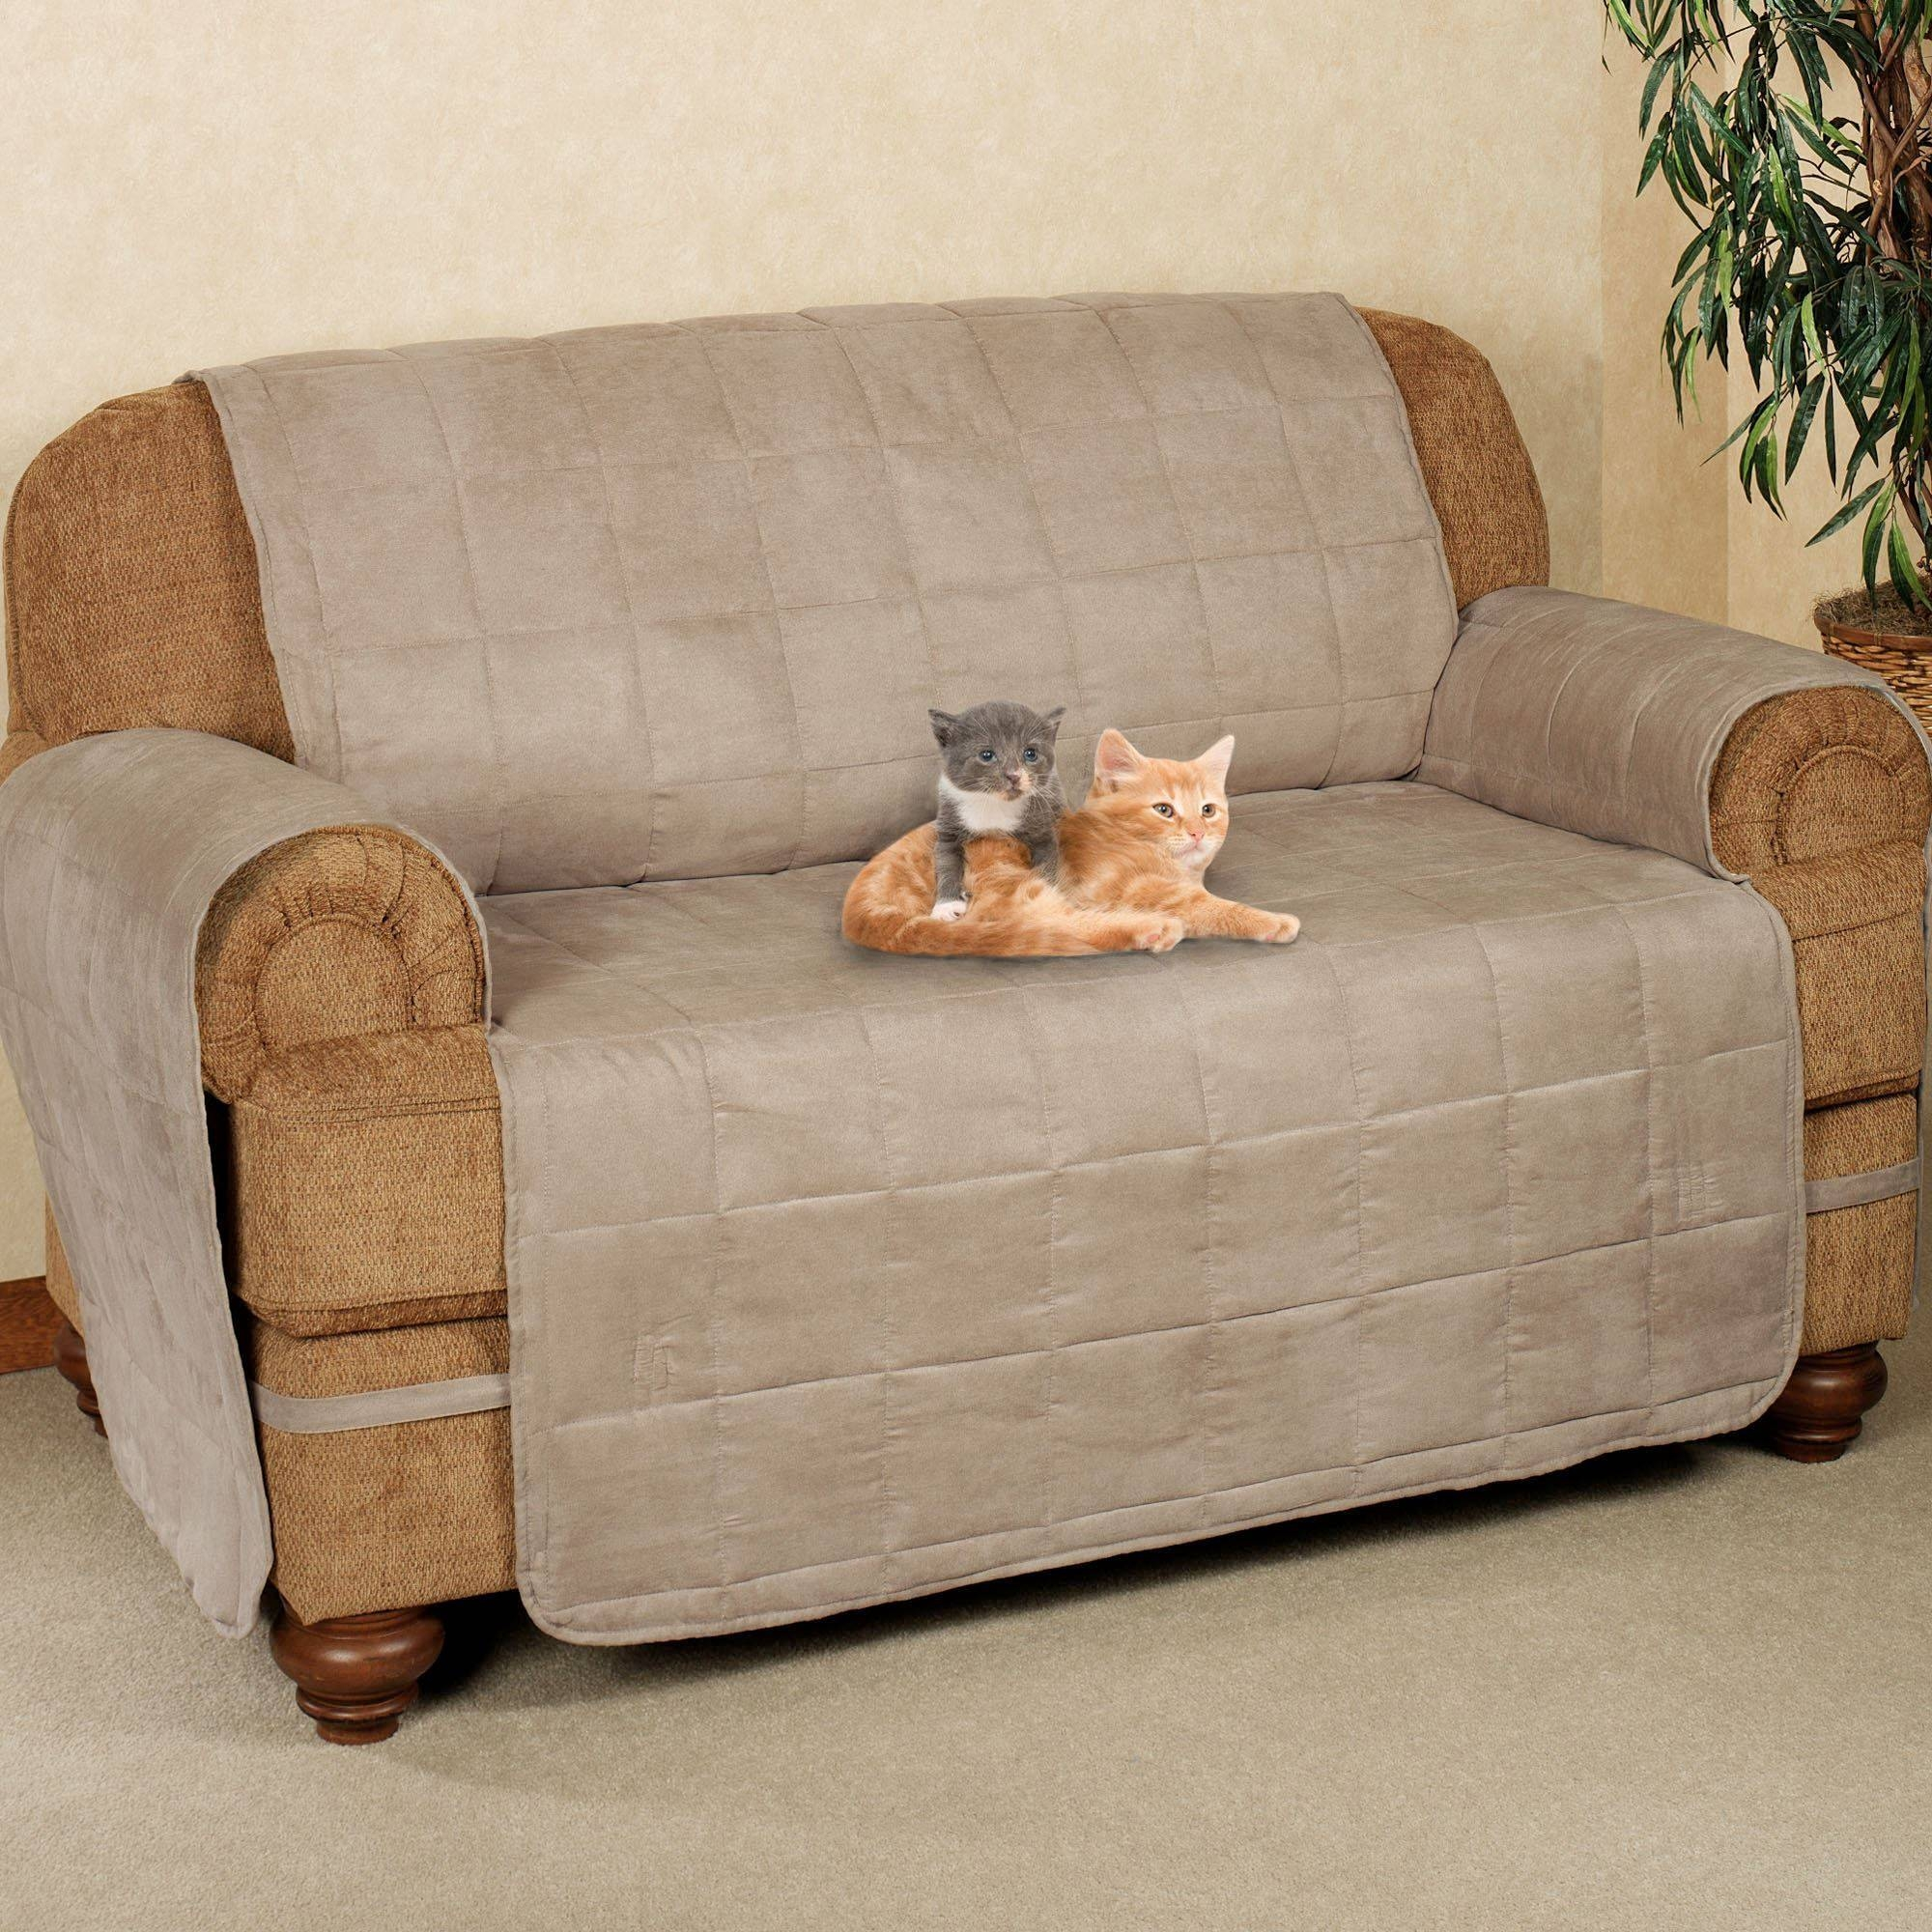 Ultimate Pet Furniture Protectors With Straps for Dog Sofas And Chairs (Image 14 of 15)